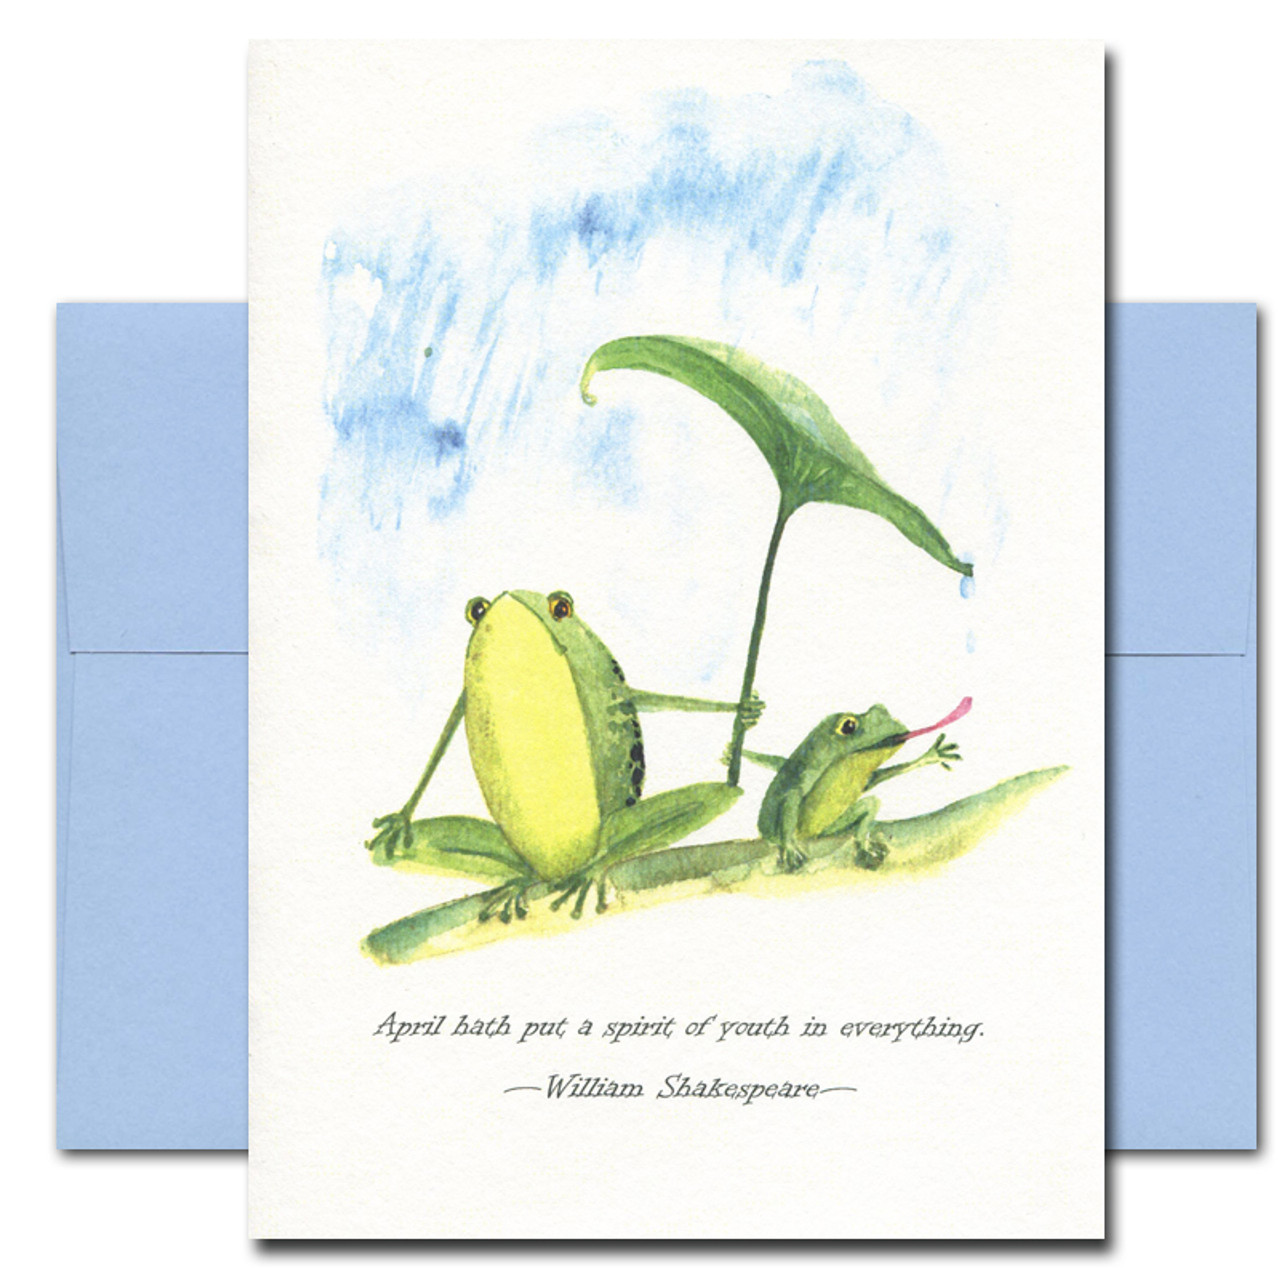 Rainy Day features two frogs hand-painted in watercolor and a quote: April hath put a spirit of youth in everything. - William Shakespeare